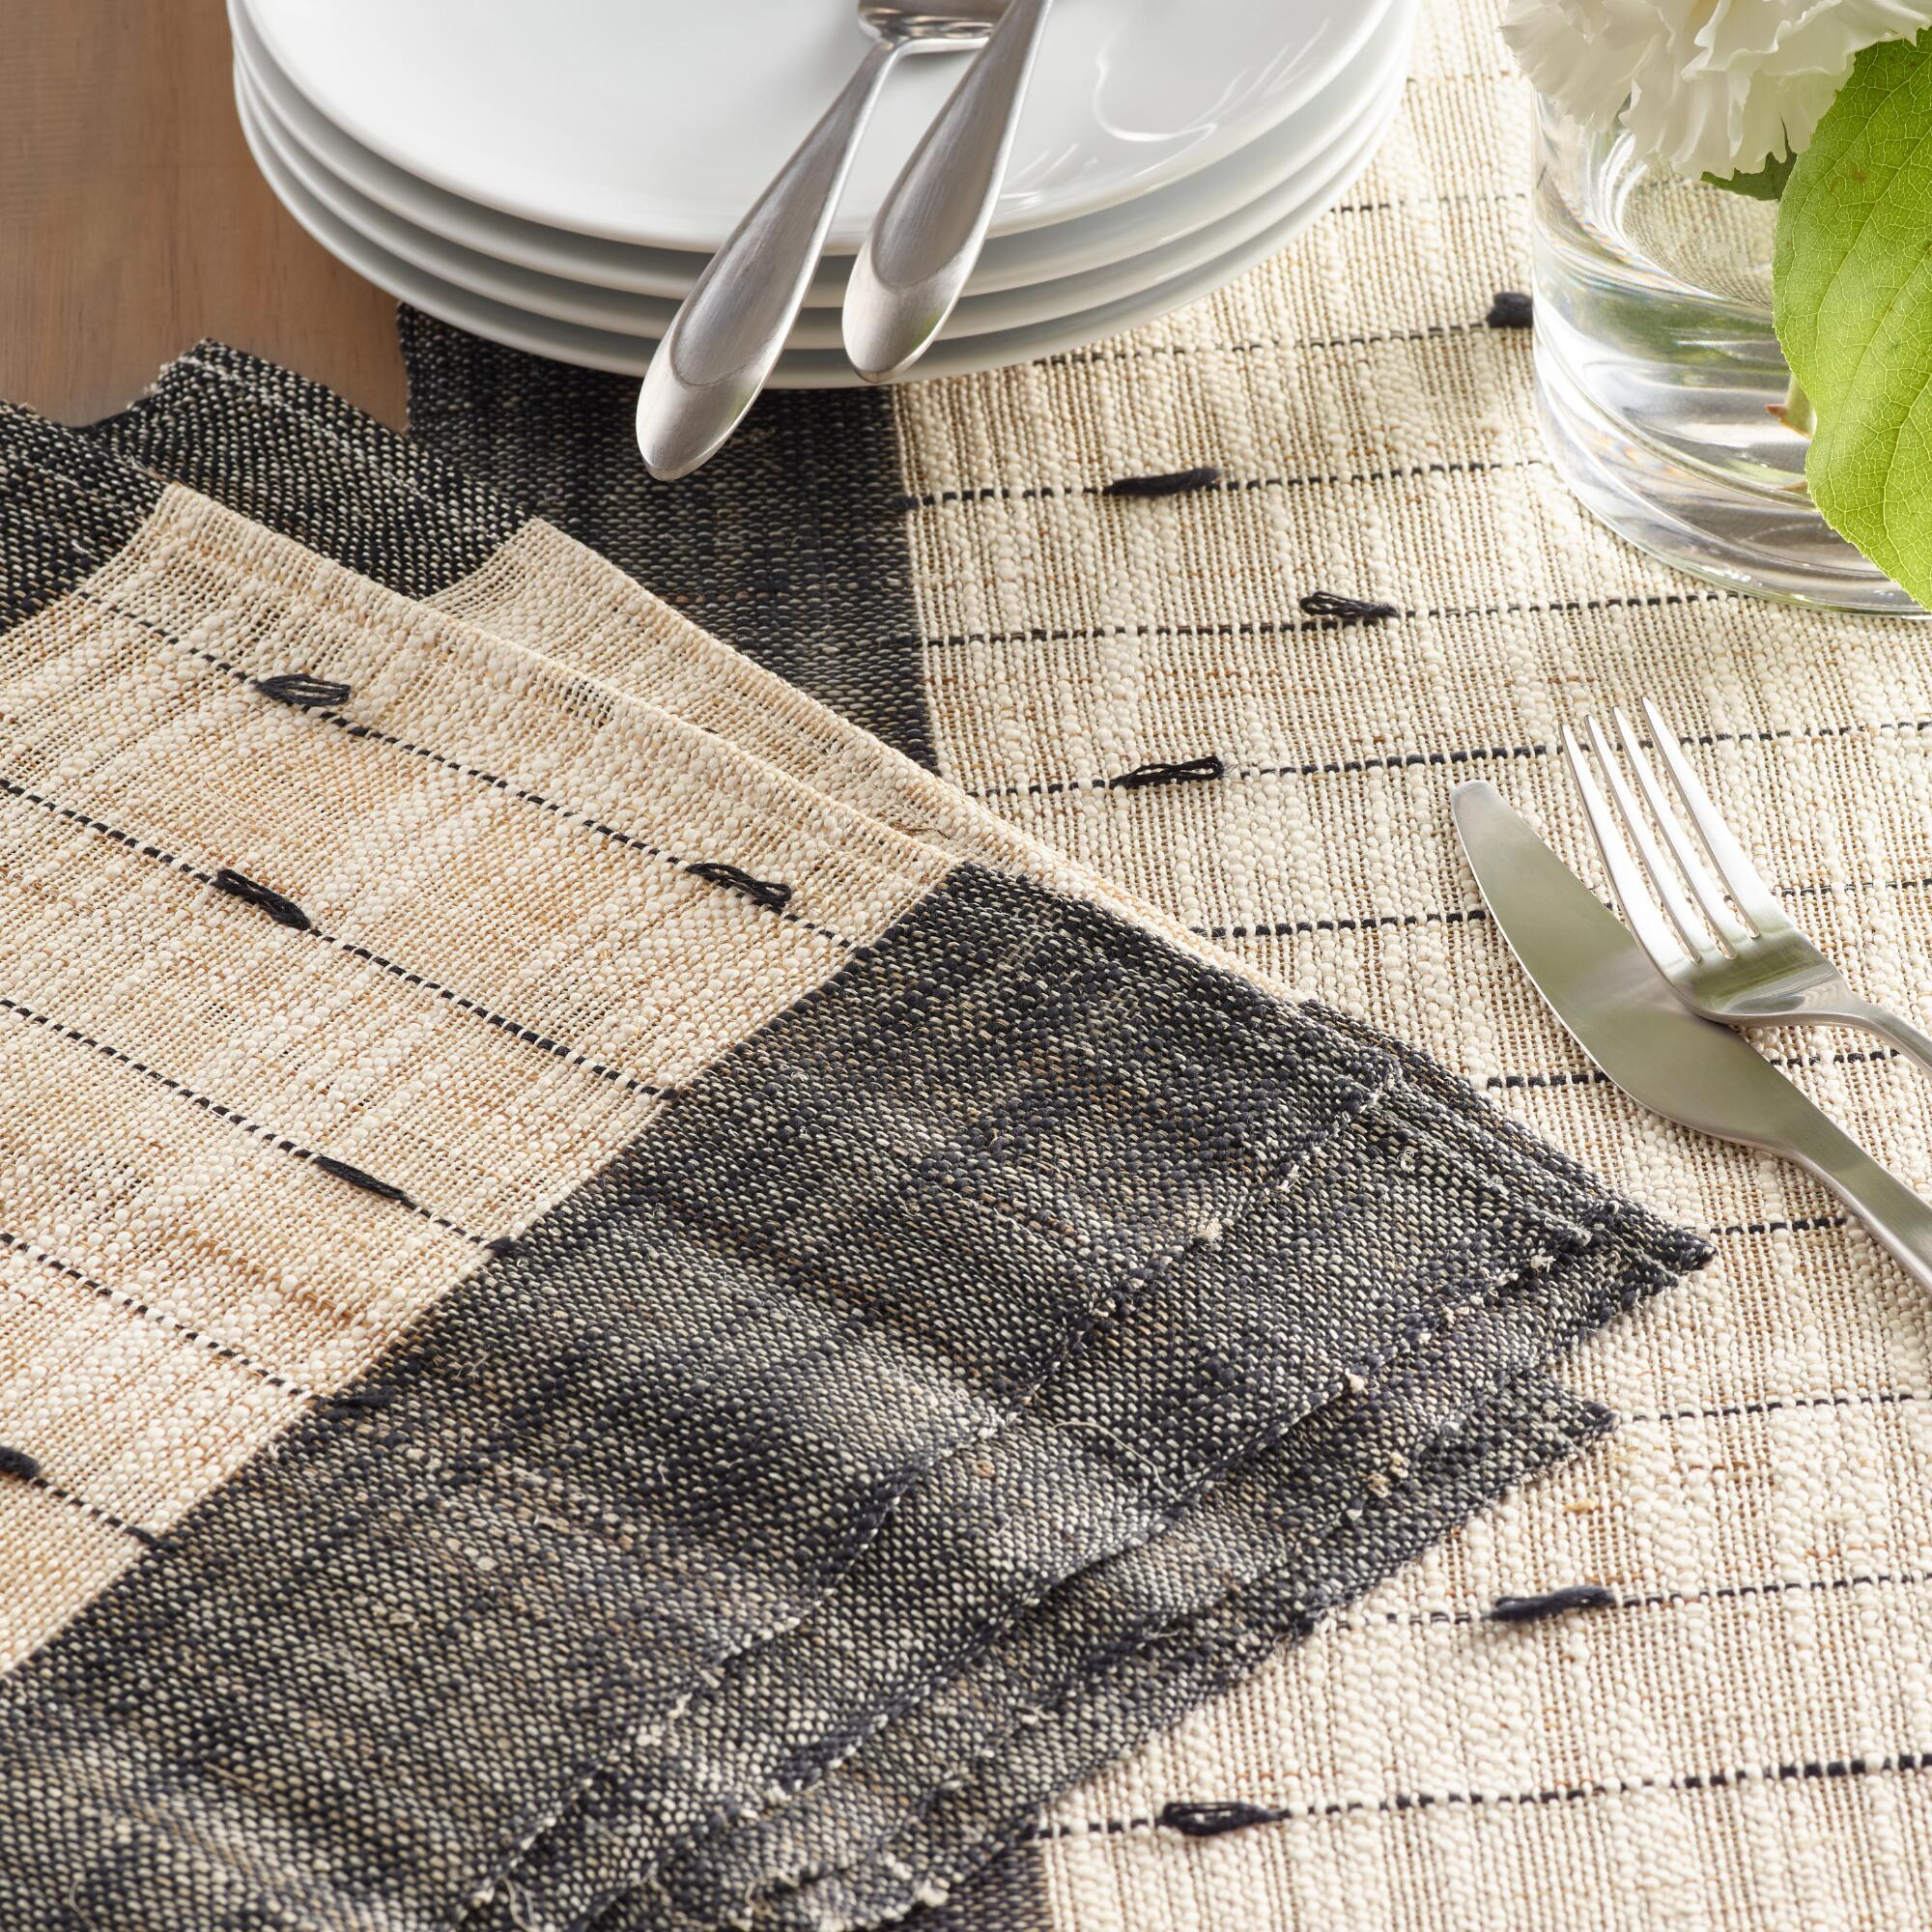 Black and White Natural Fiber Woven Table Linen Collection by World Market